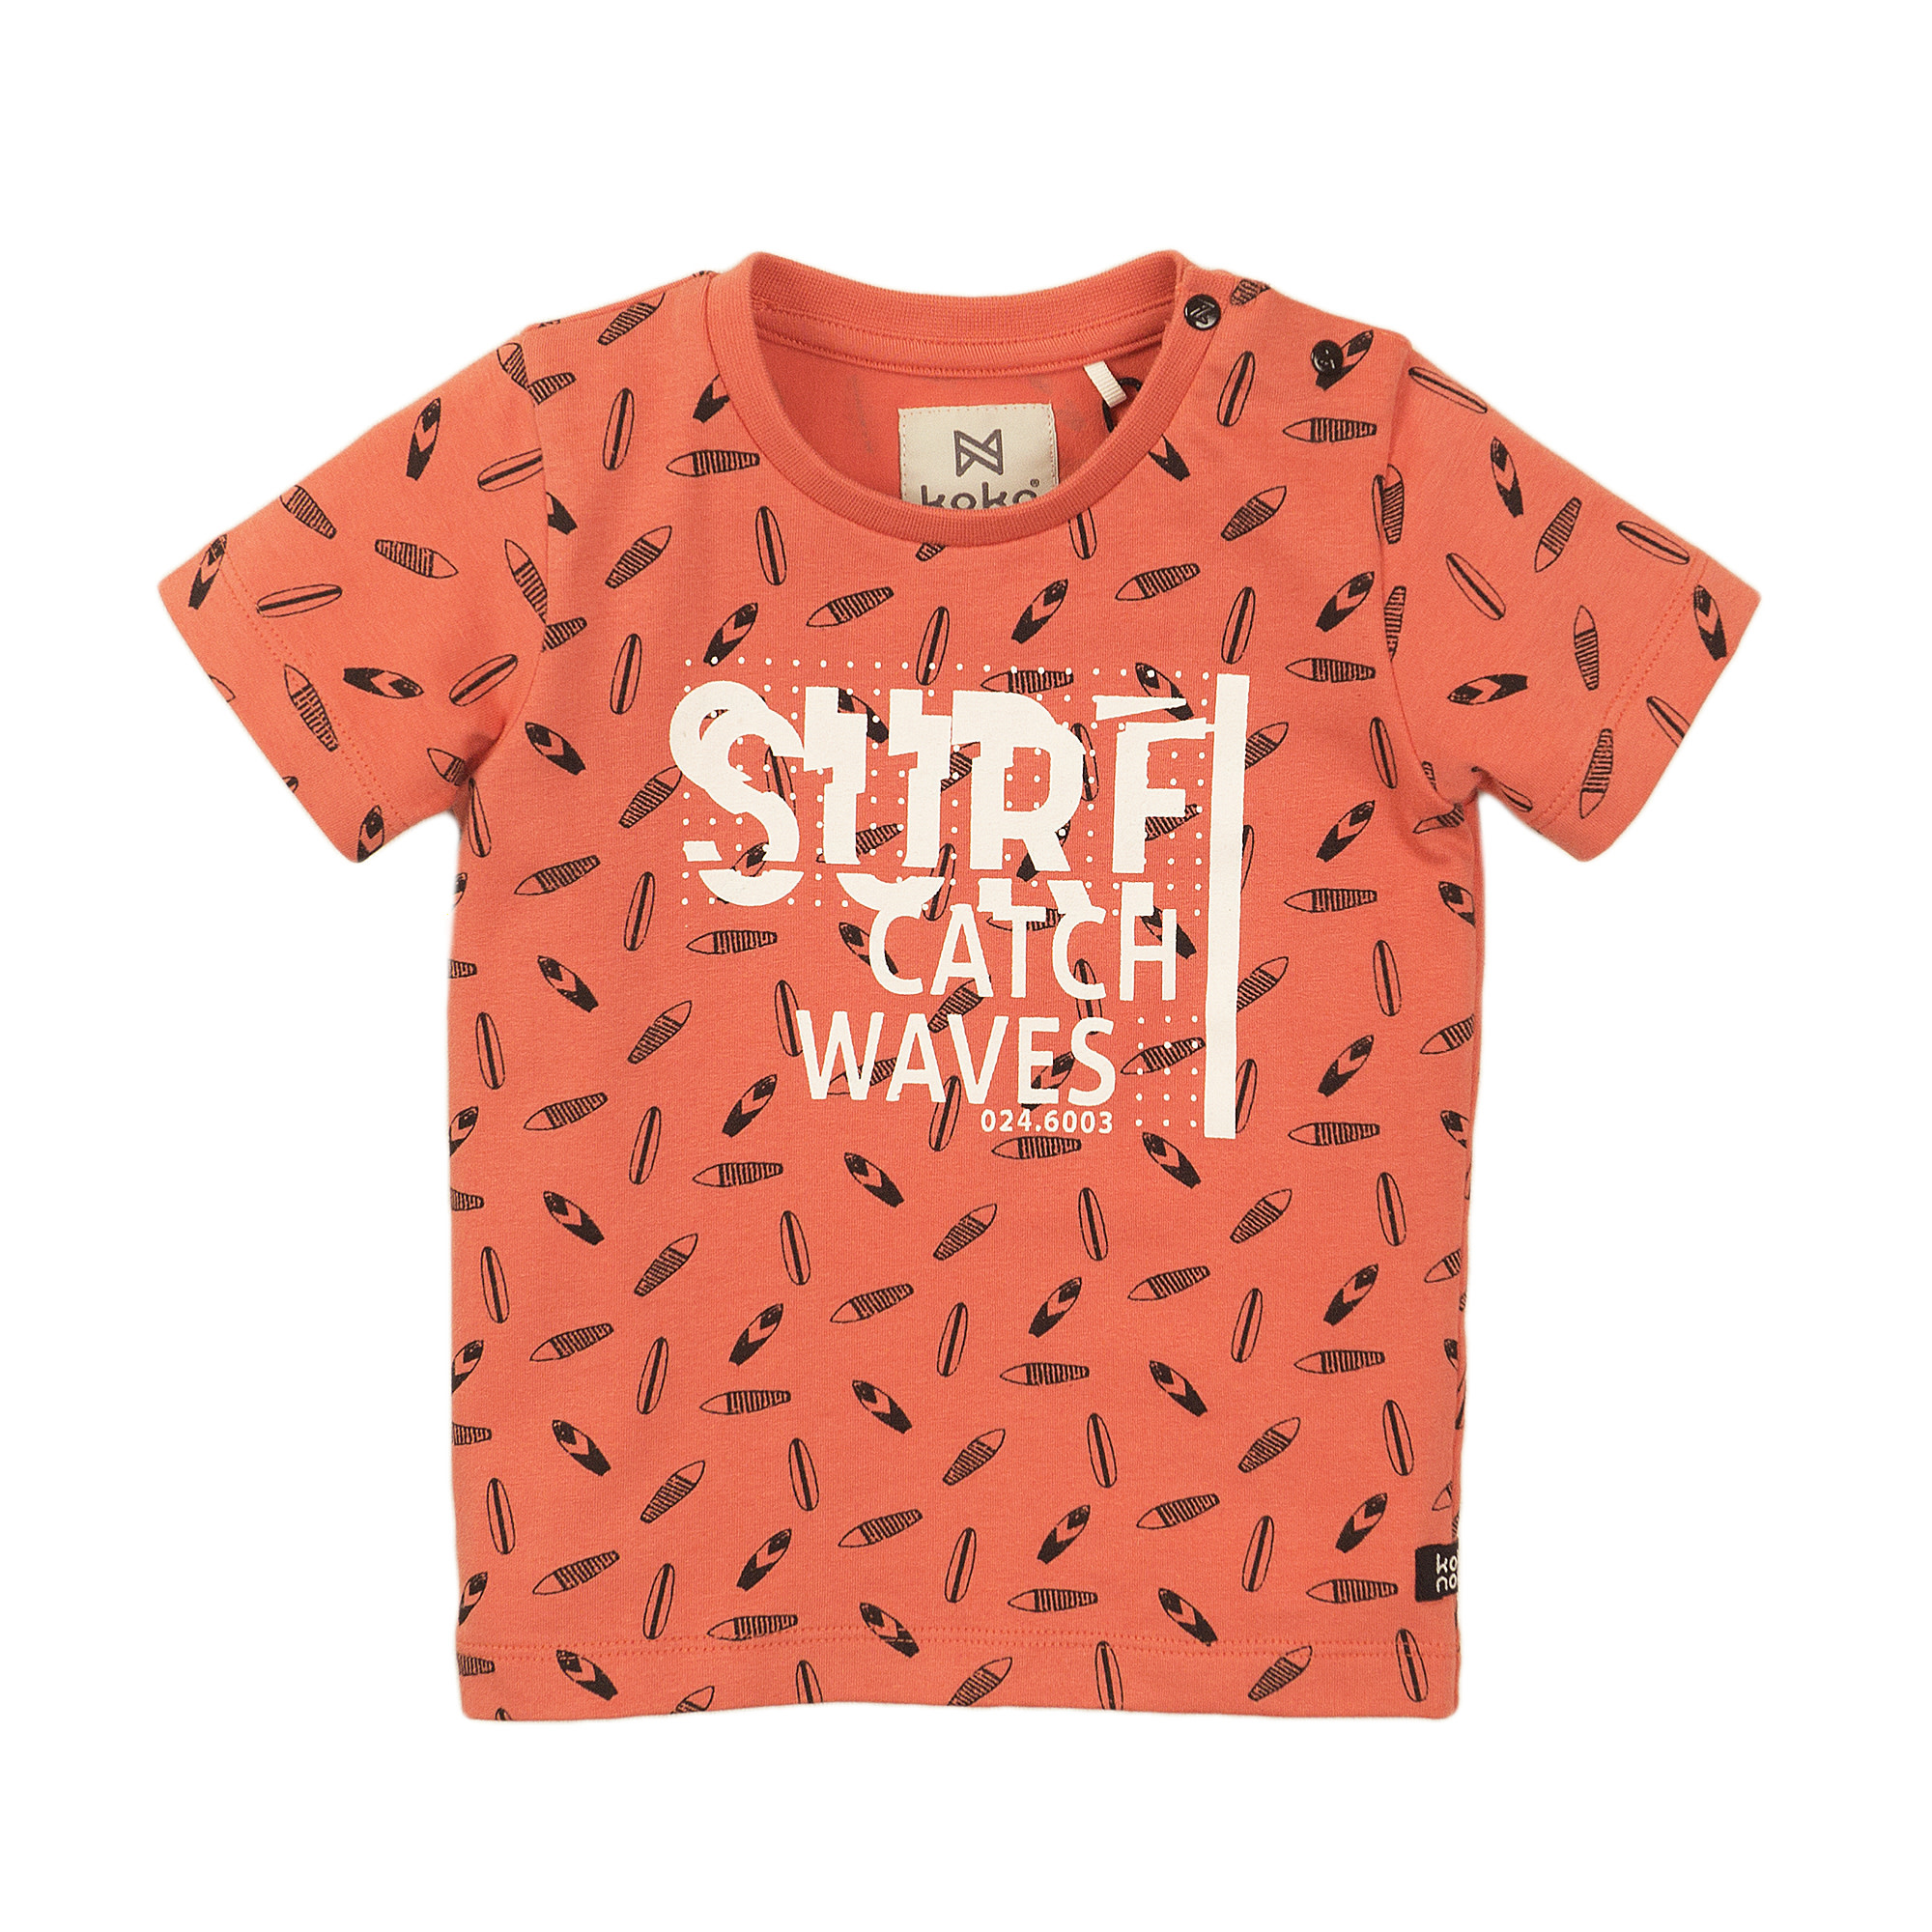 Catch The Waves Tee